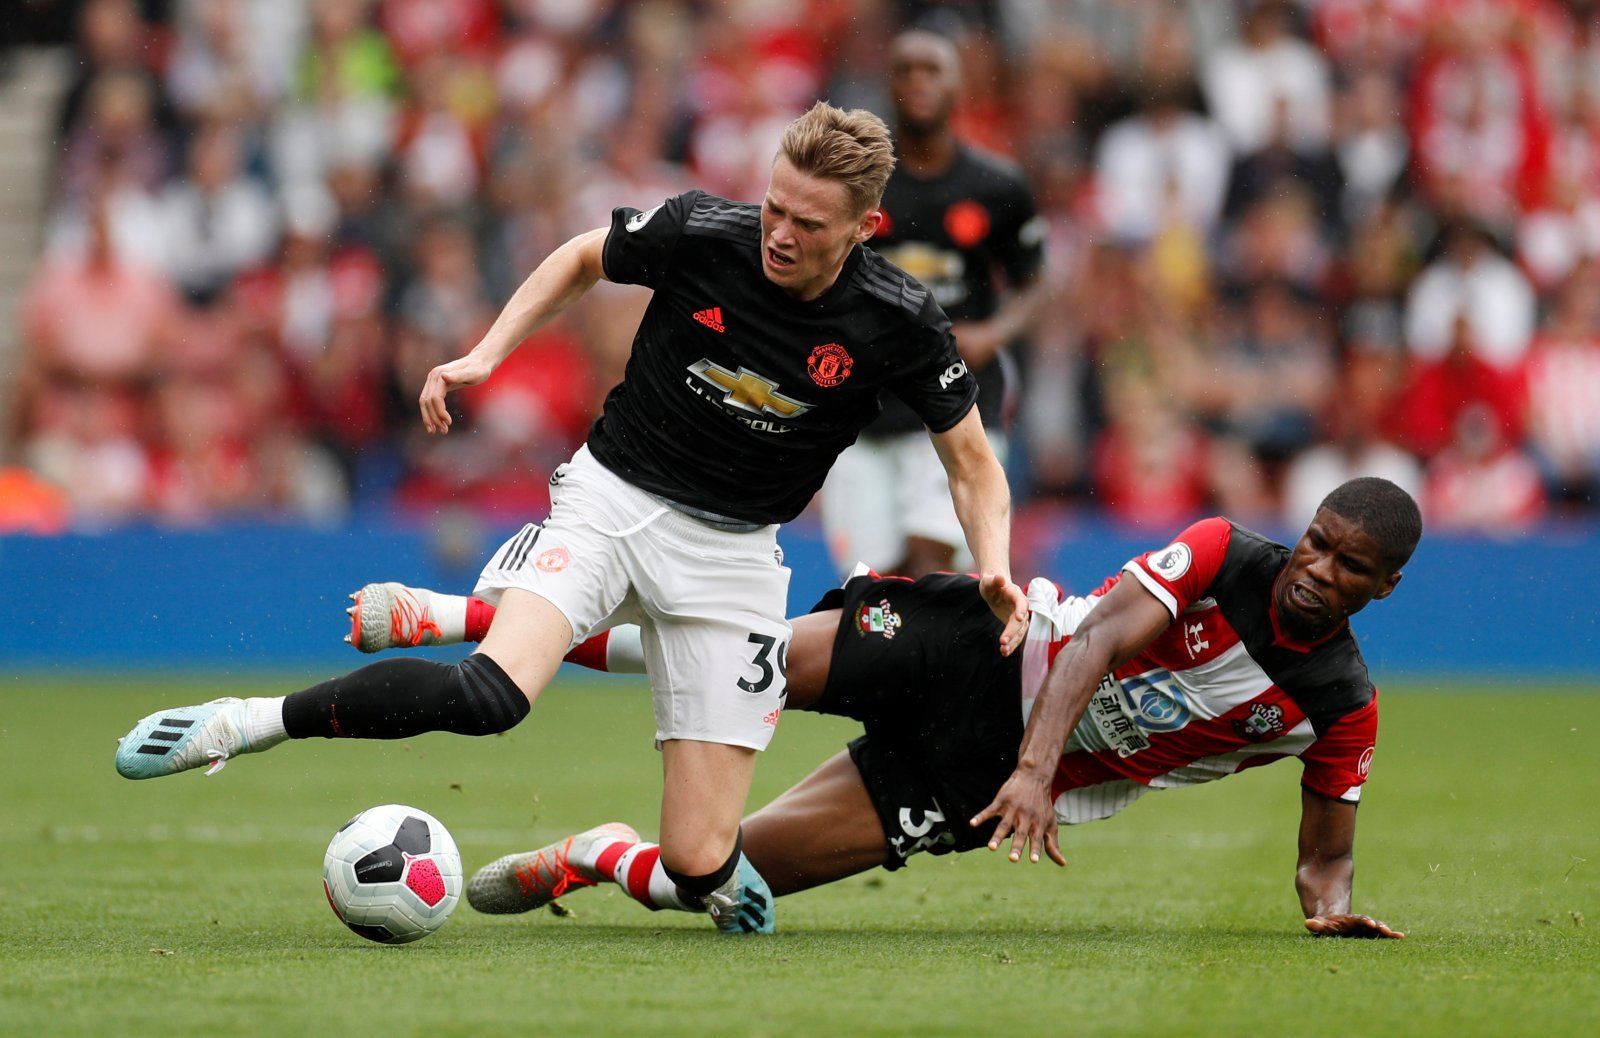 Unsung Hero: Scott McTominay shines for Manchester United as they fall short at Southampton